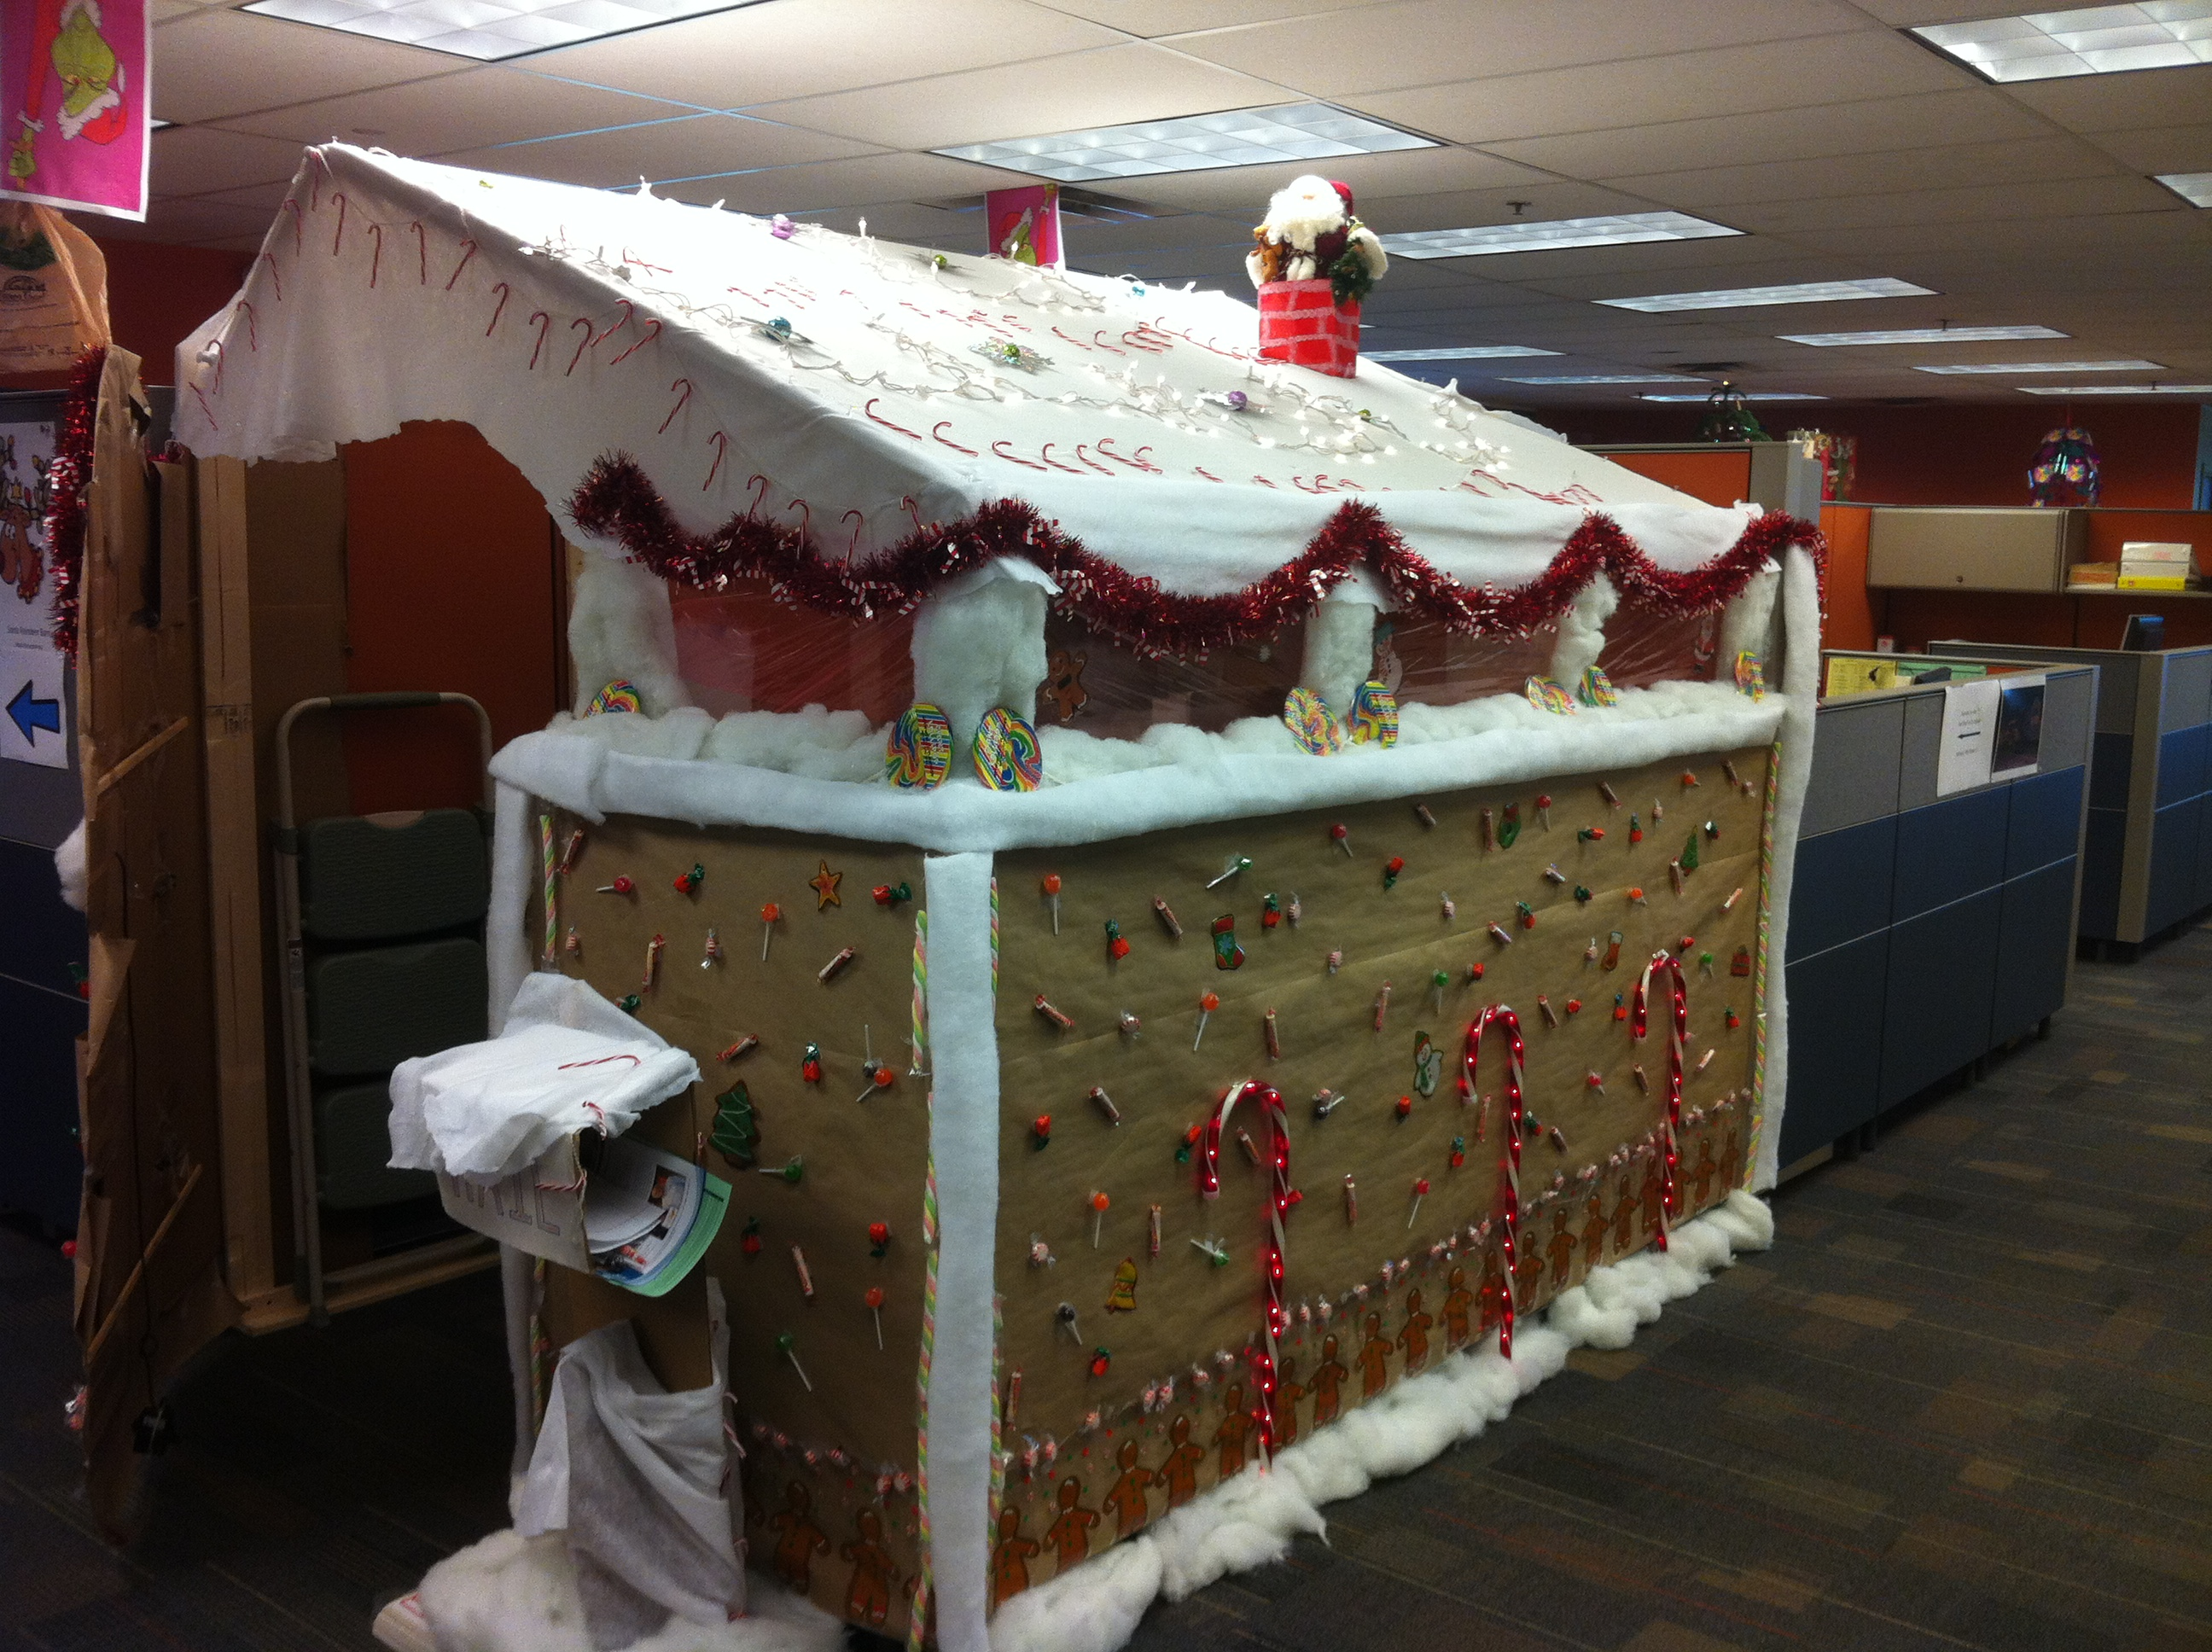 Work Pod Decorating Ideas Christmas : Christmas and our inner light the tao of pig pen